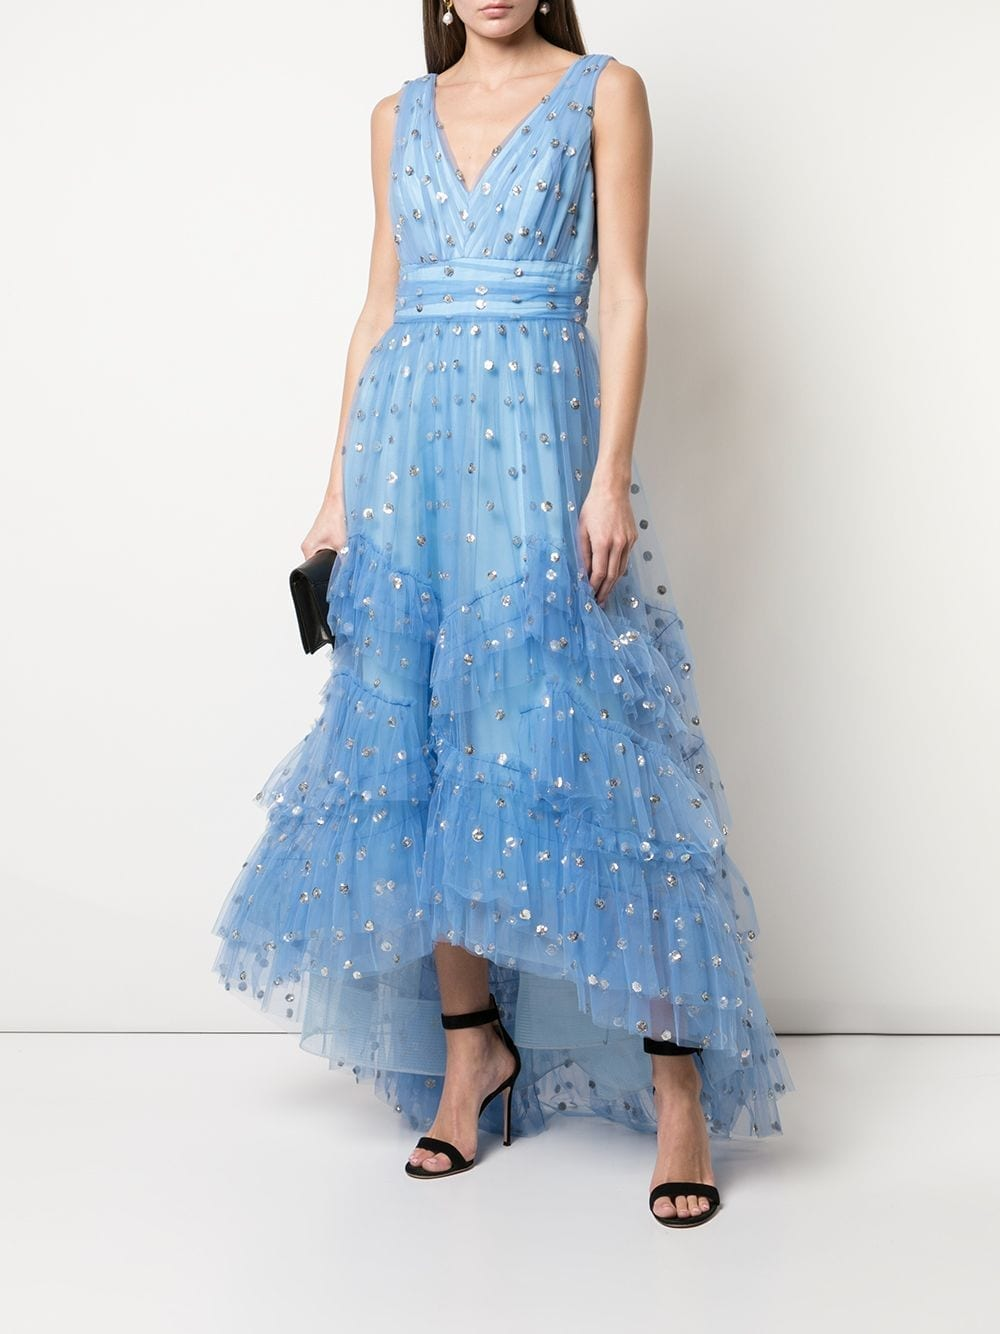 MARCHESA NOTTE Polka Dot Print Tulle Gown